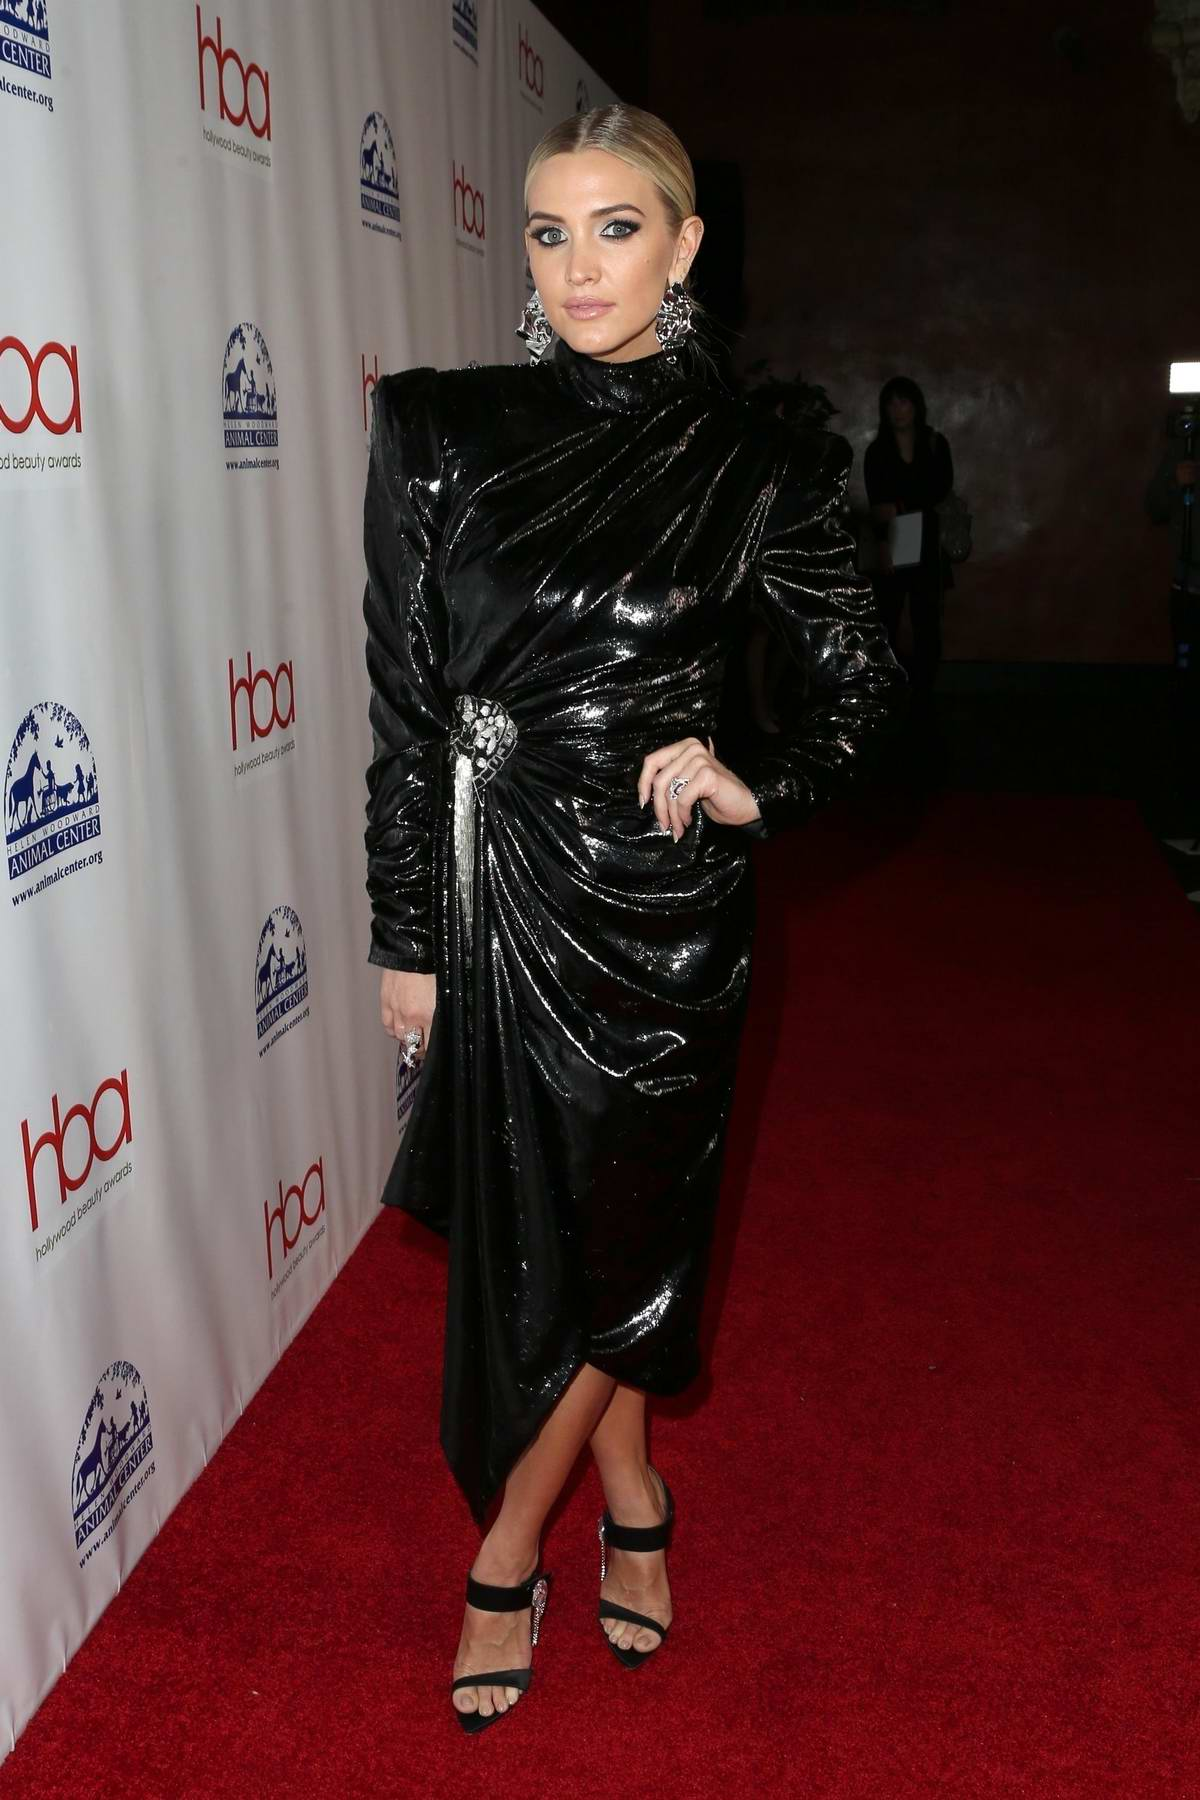 Ashlee Simpson attends the 5th annual Hollywood Beauty Awards held at the Avalon in Hollywood, California